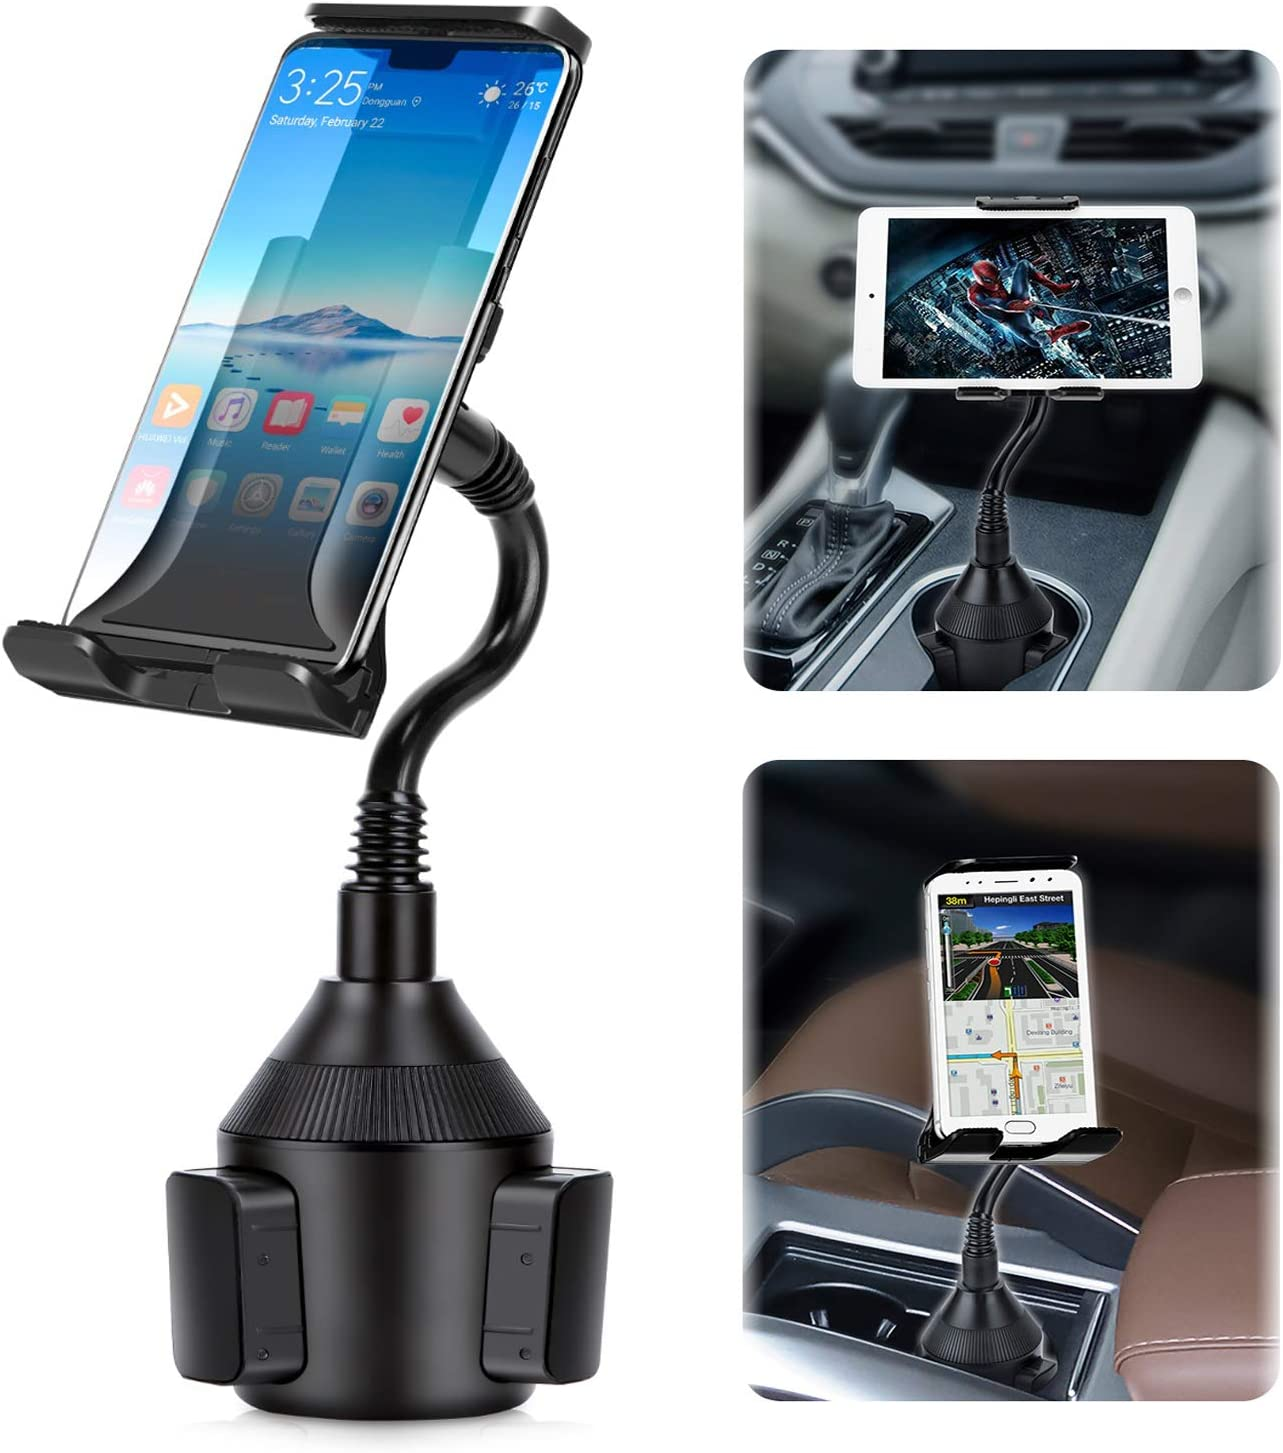 Car Cup Holder Phone//Cup Holder Tablet Holder//Smartphone Mount 2-in-1 Universal Smarts Adjustable cupholder ipad Mount for iPhone,iPad Pro10.5//Sony Samsung Galaxy Tab//iPhone 11 XR PRO X 8 Plus